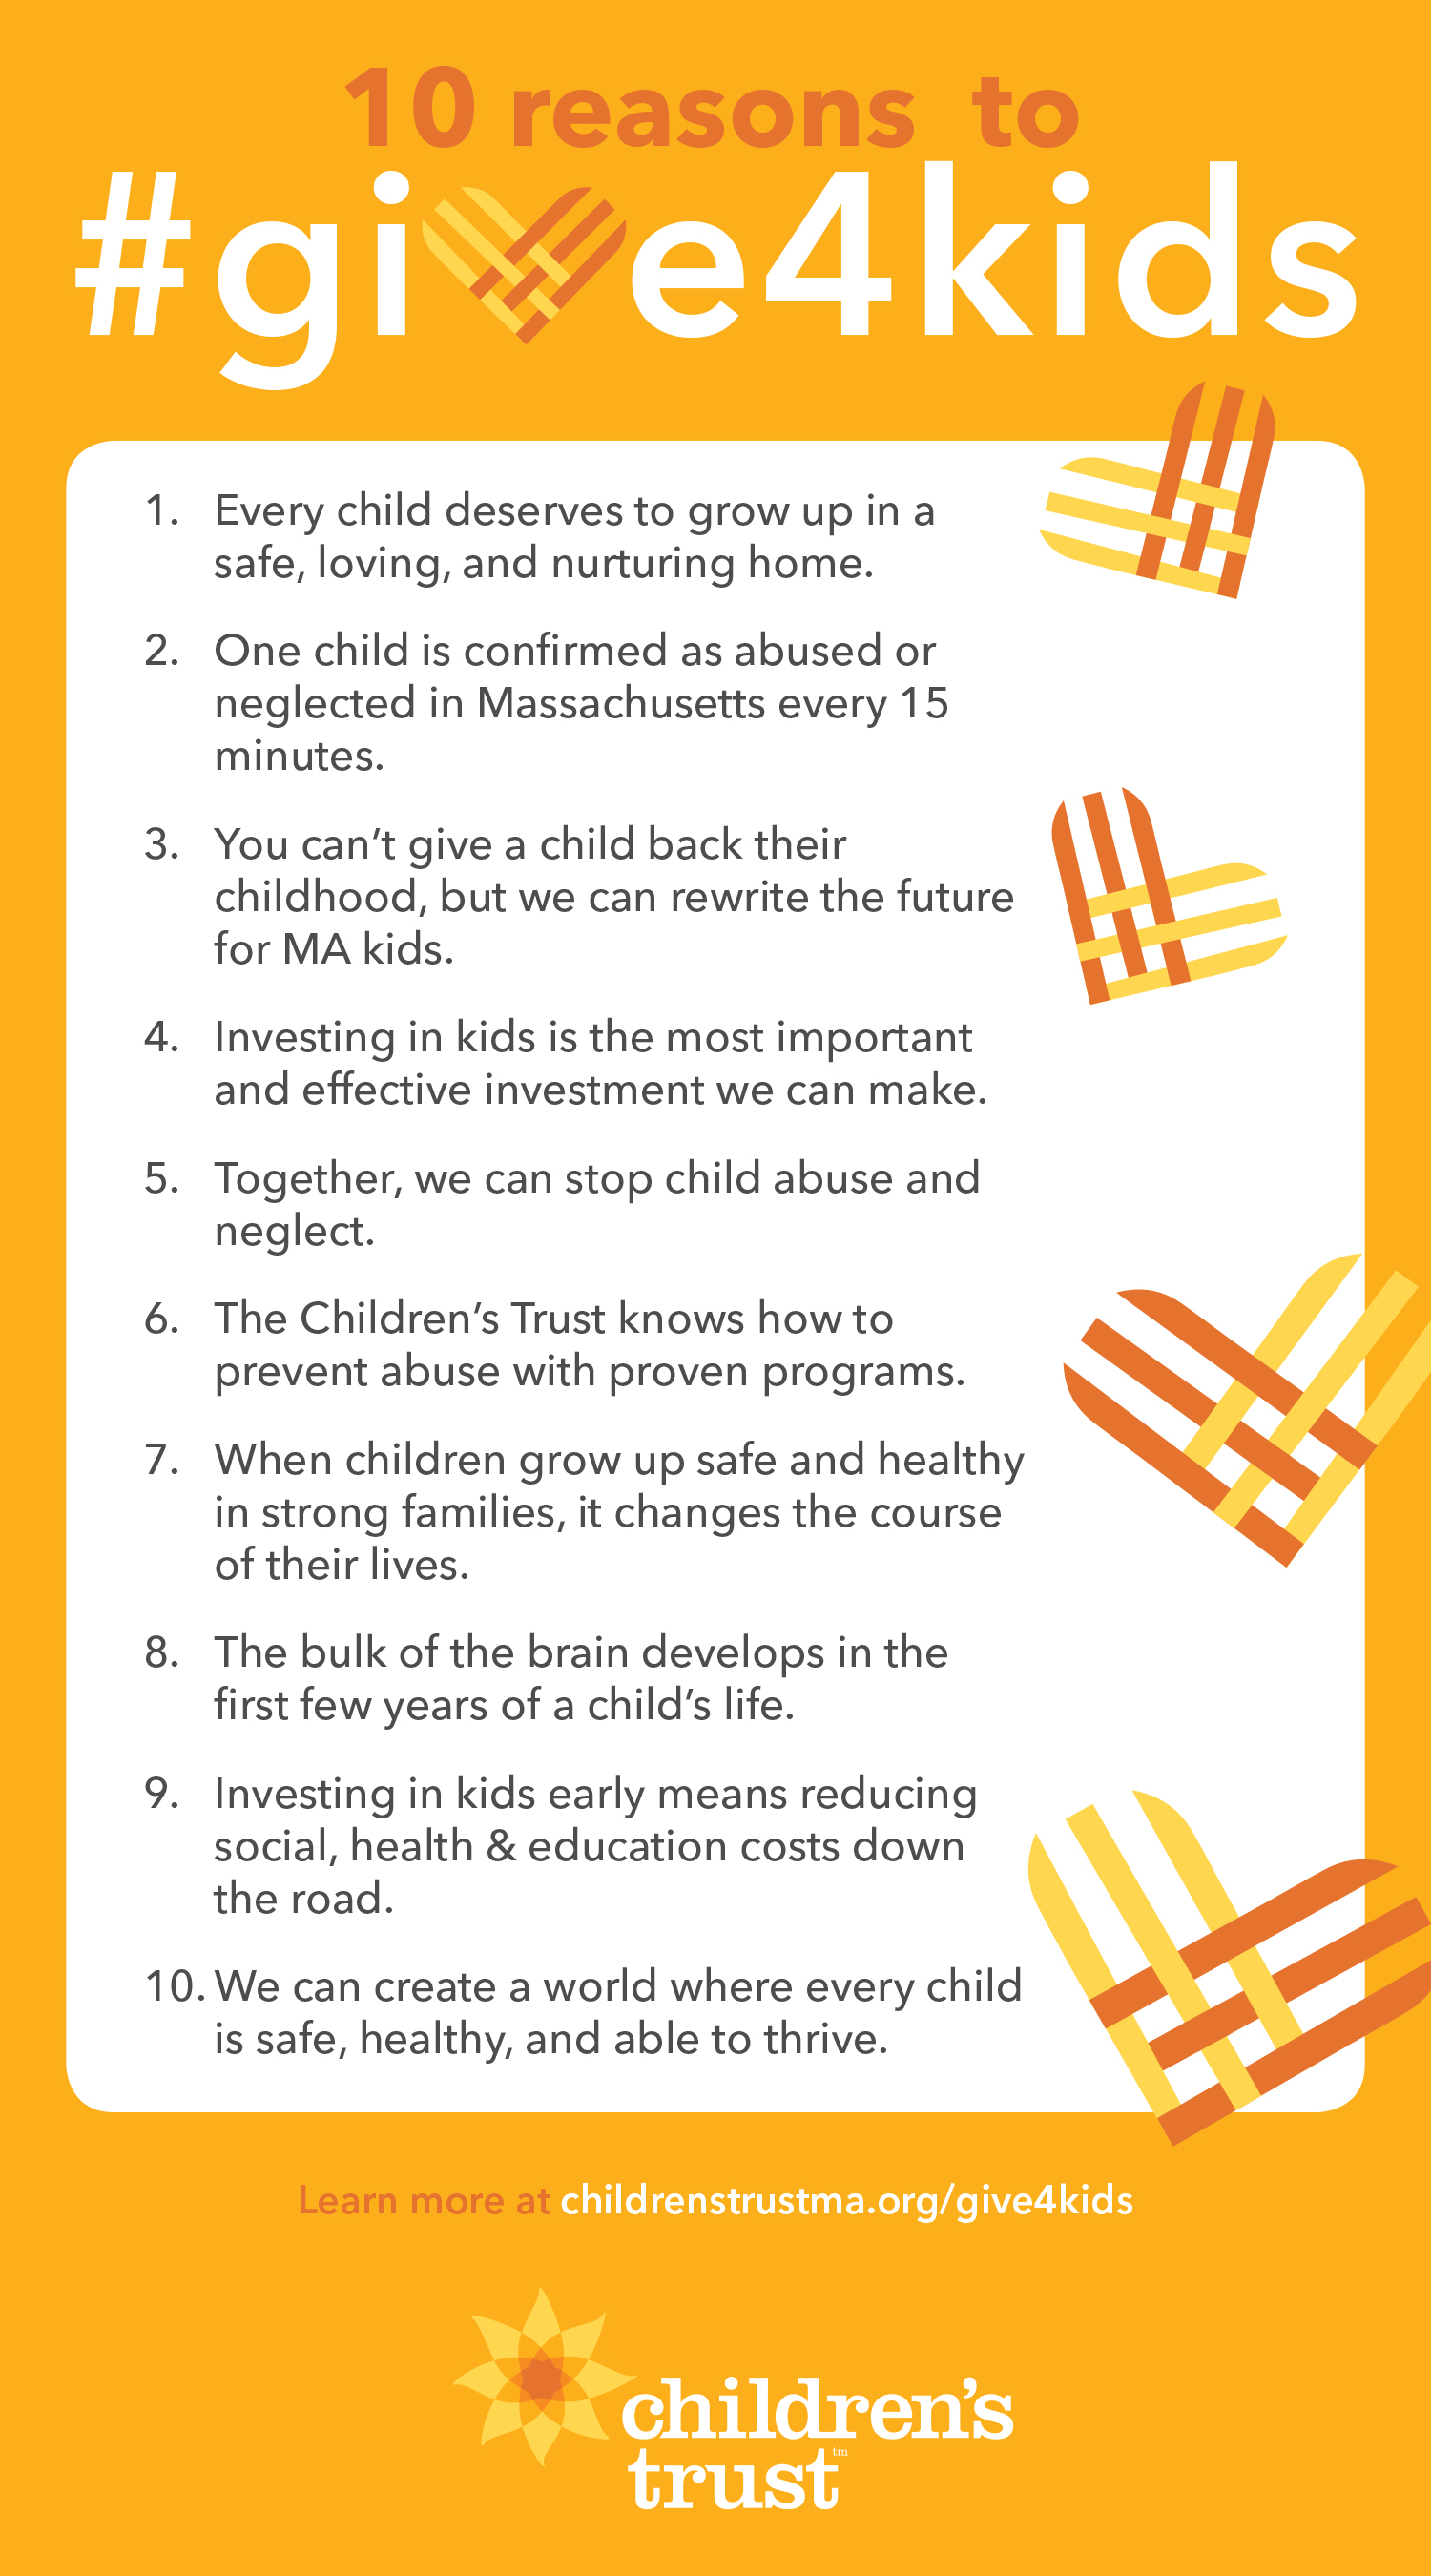 10 reasons to #give4kids